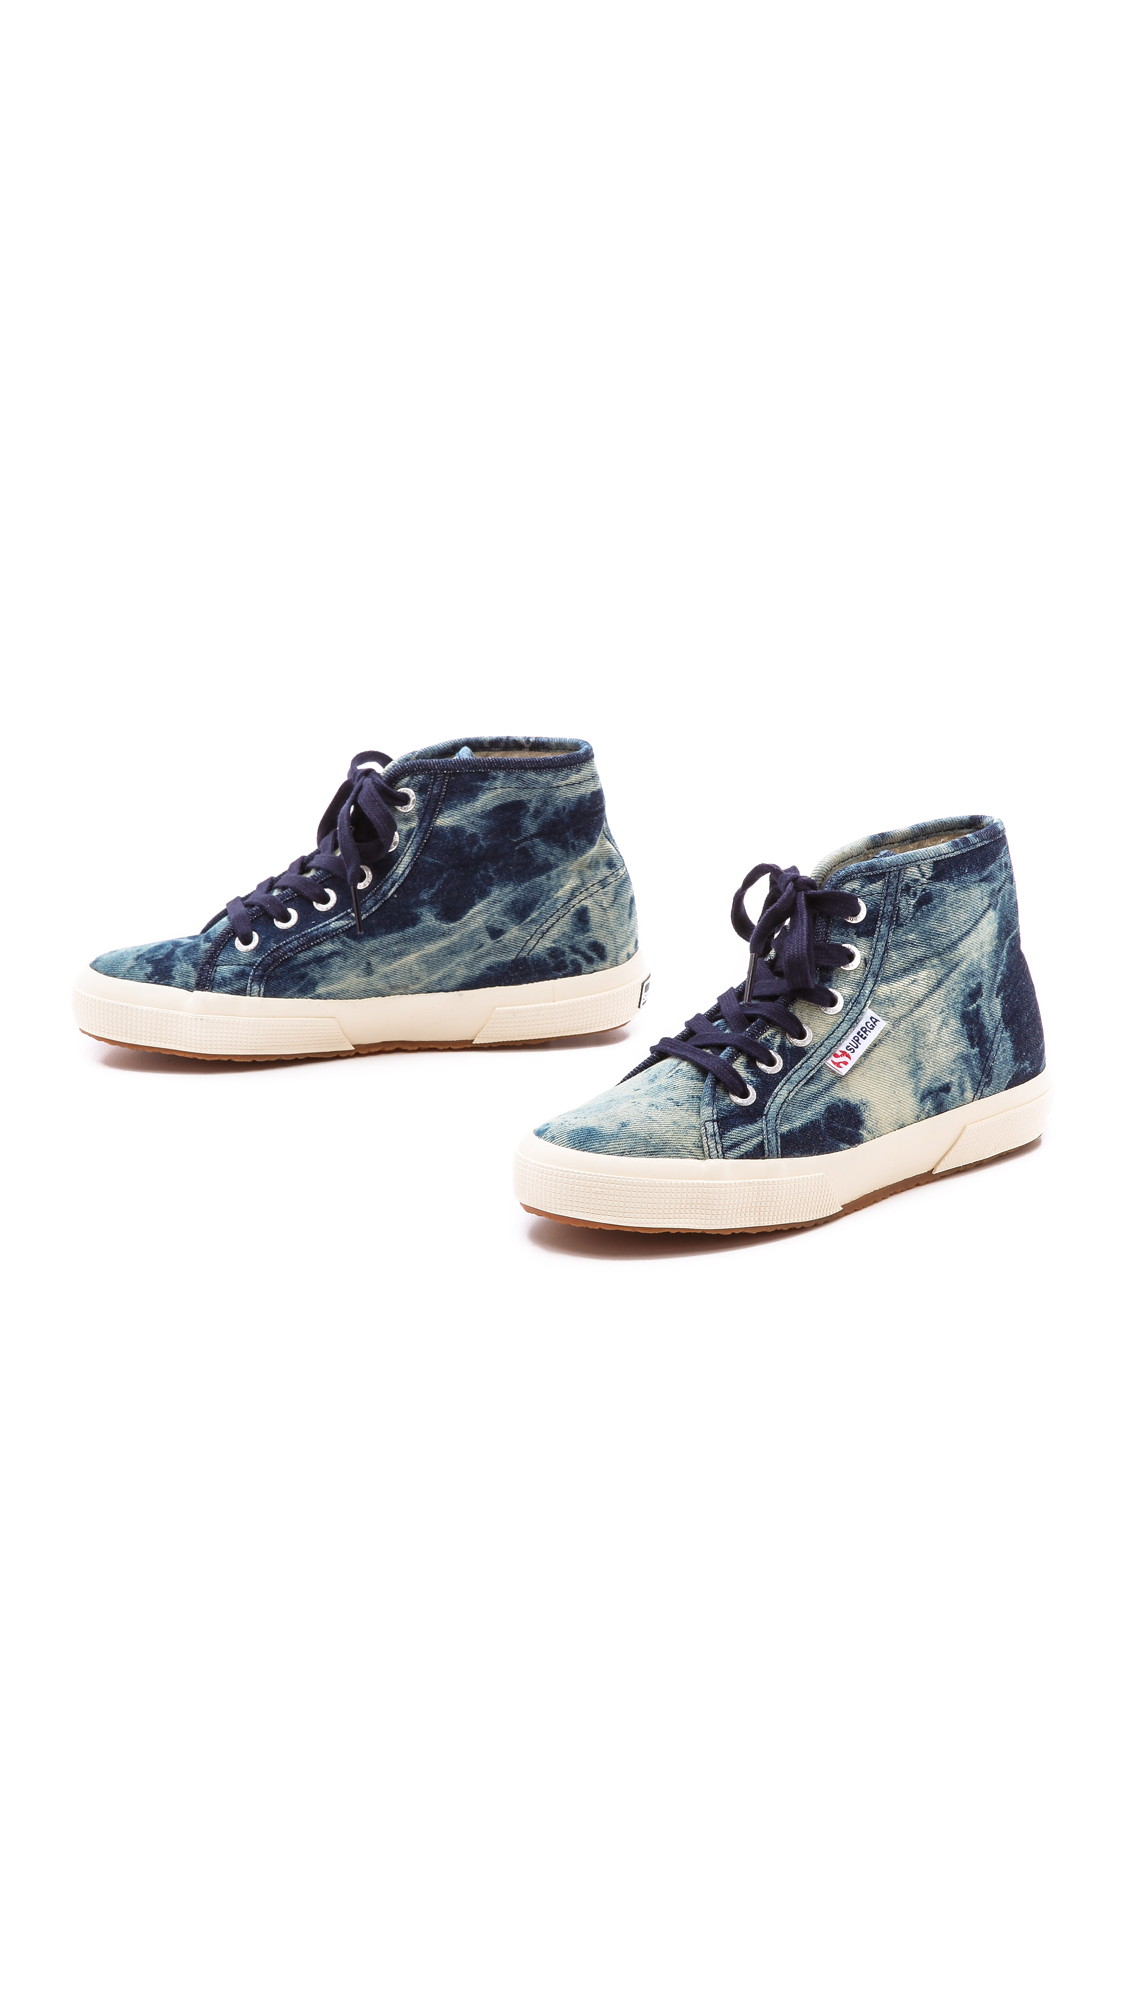 8745632a884ea Superga Denim High Top Sneakers - Indigo in Blue - Lyst